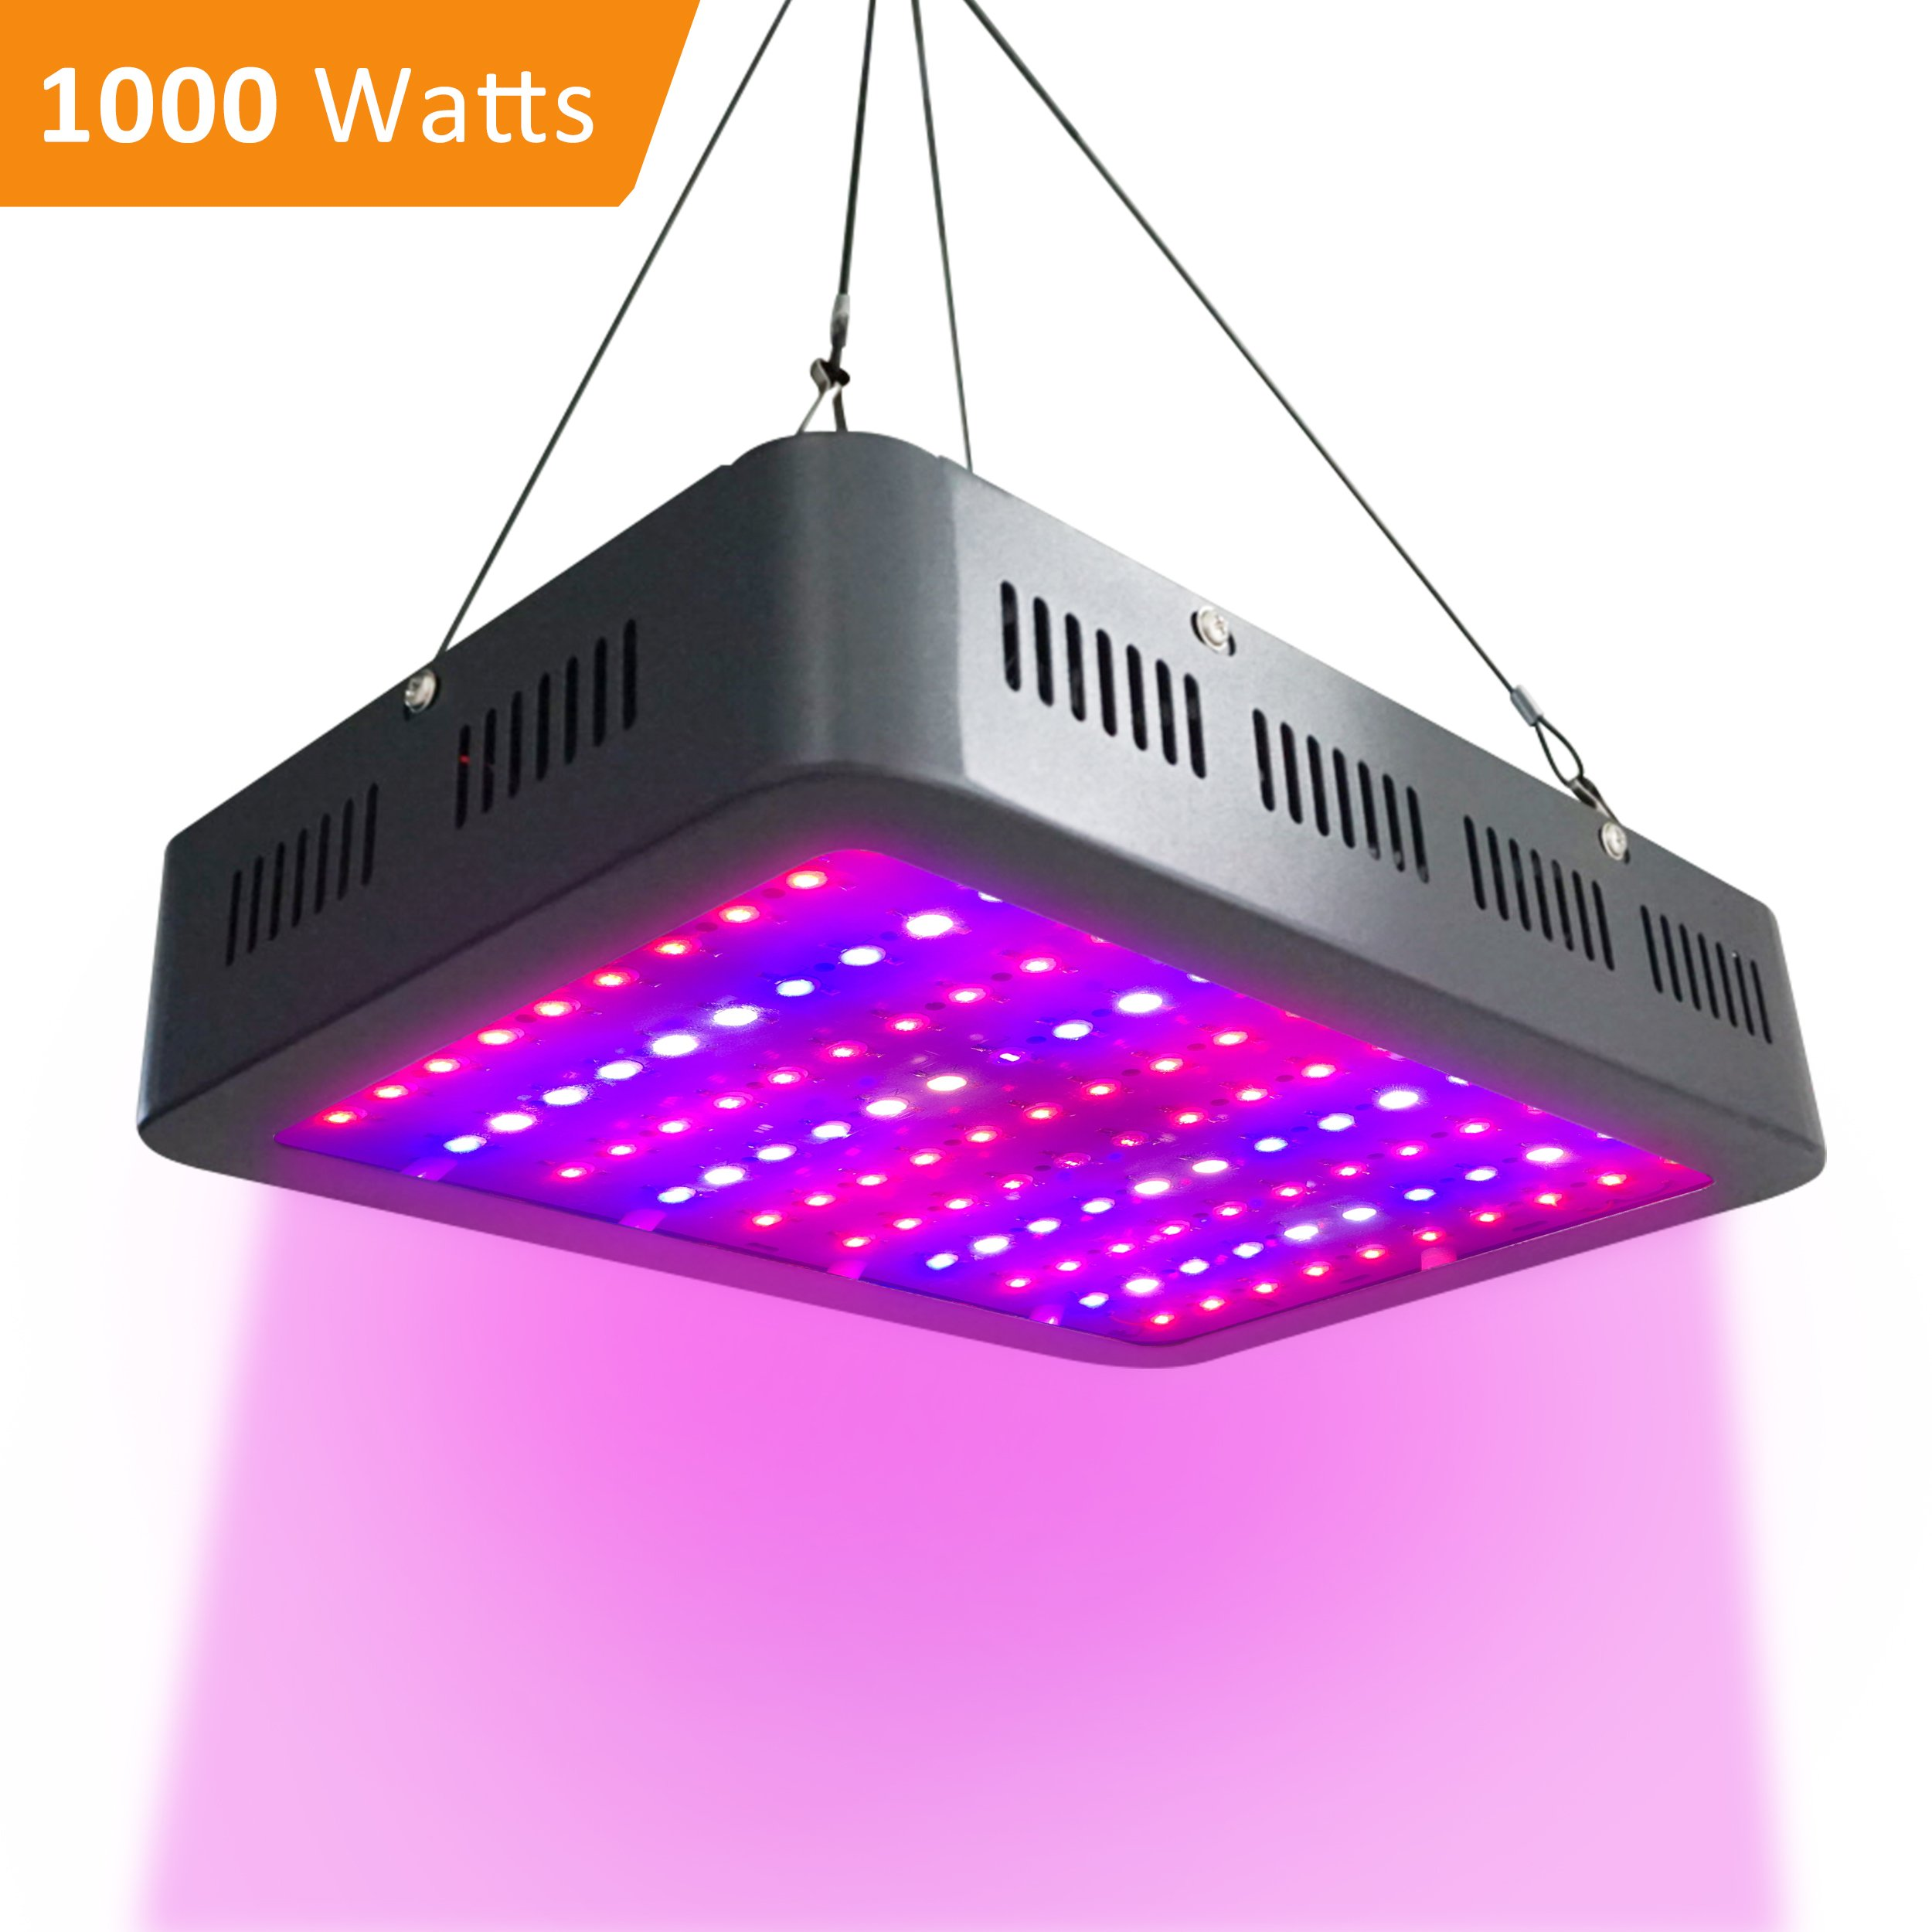 LED Grow Light 1000W Double Clips Growing Lamps Full Spectrum Planting Bulbs for Indoor Hydroponics Greenhouse Veg Flower Gardening All Phrase of Plant Growth (10W LEDs) by AUTOGEN